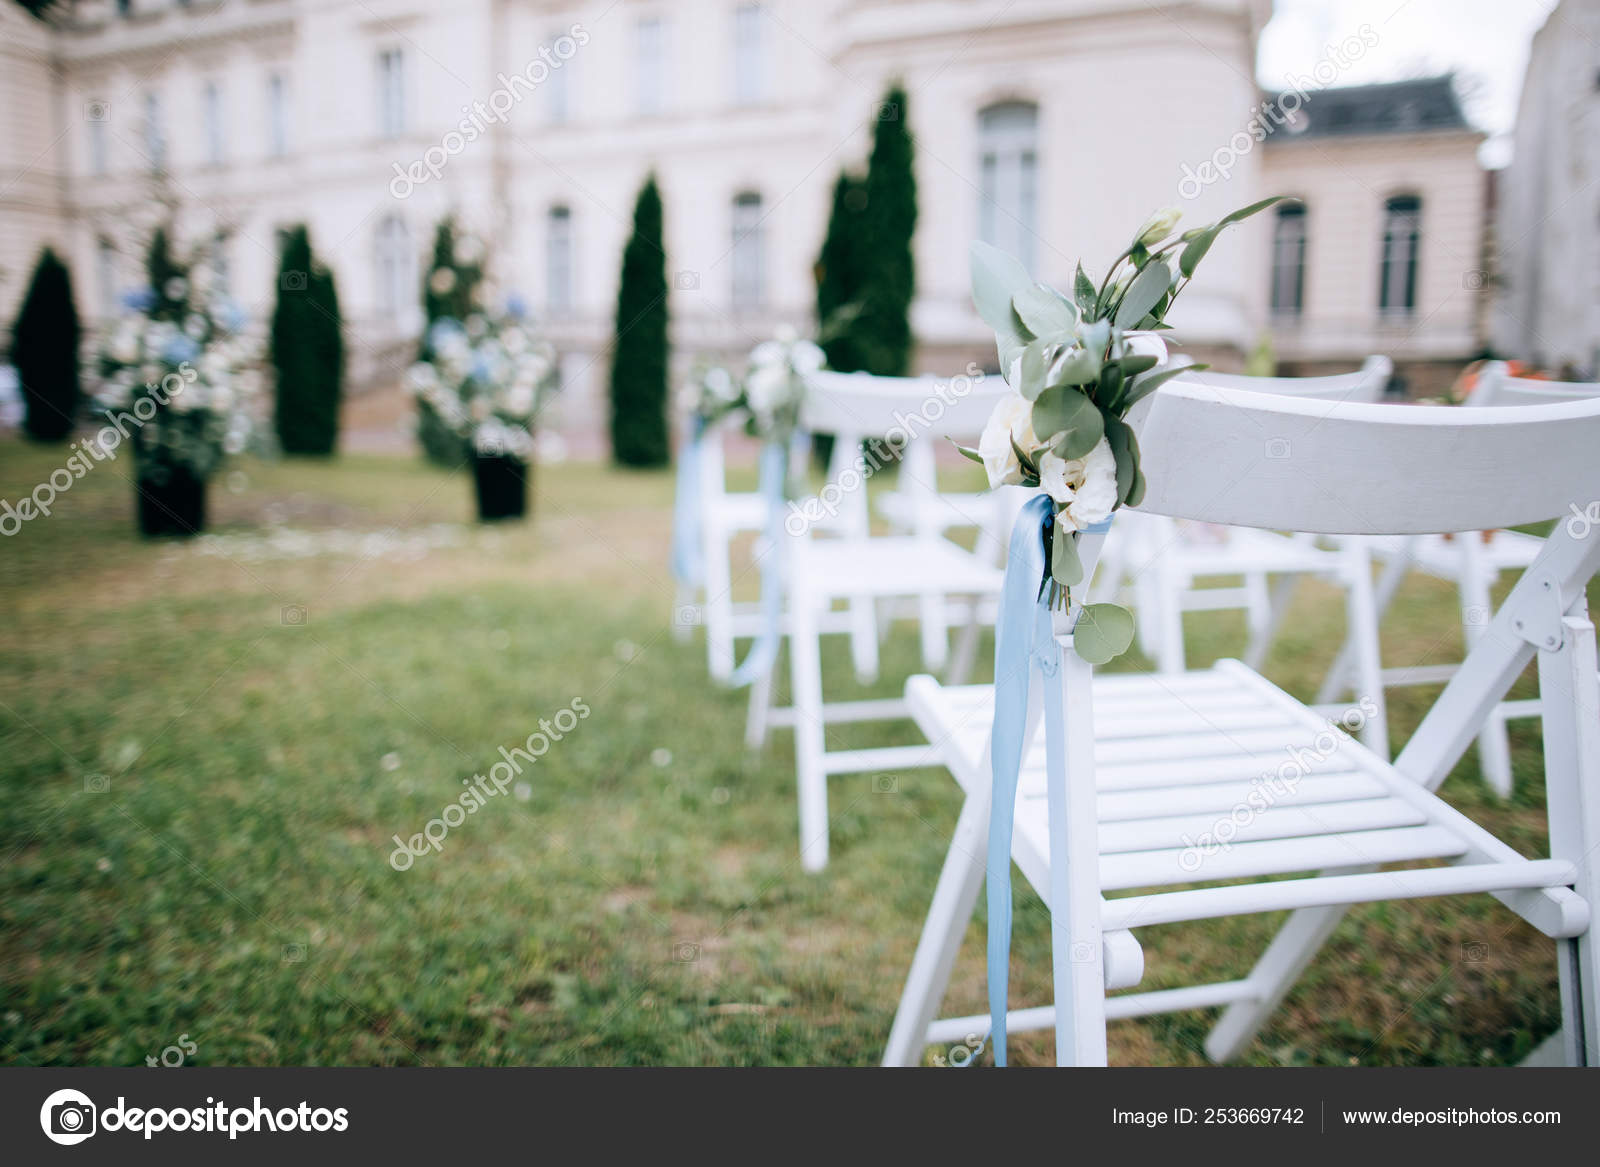 Flower Decorations White Chairs Wedding Ceremony Outdoors Stock Photo C Beorm 253669742